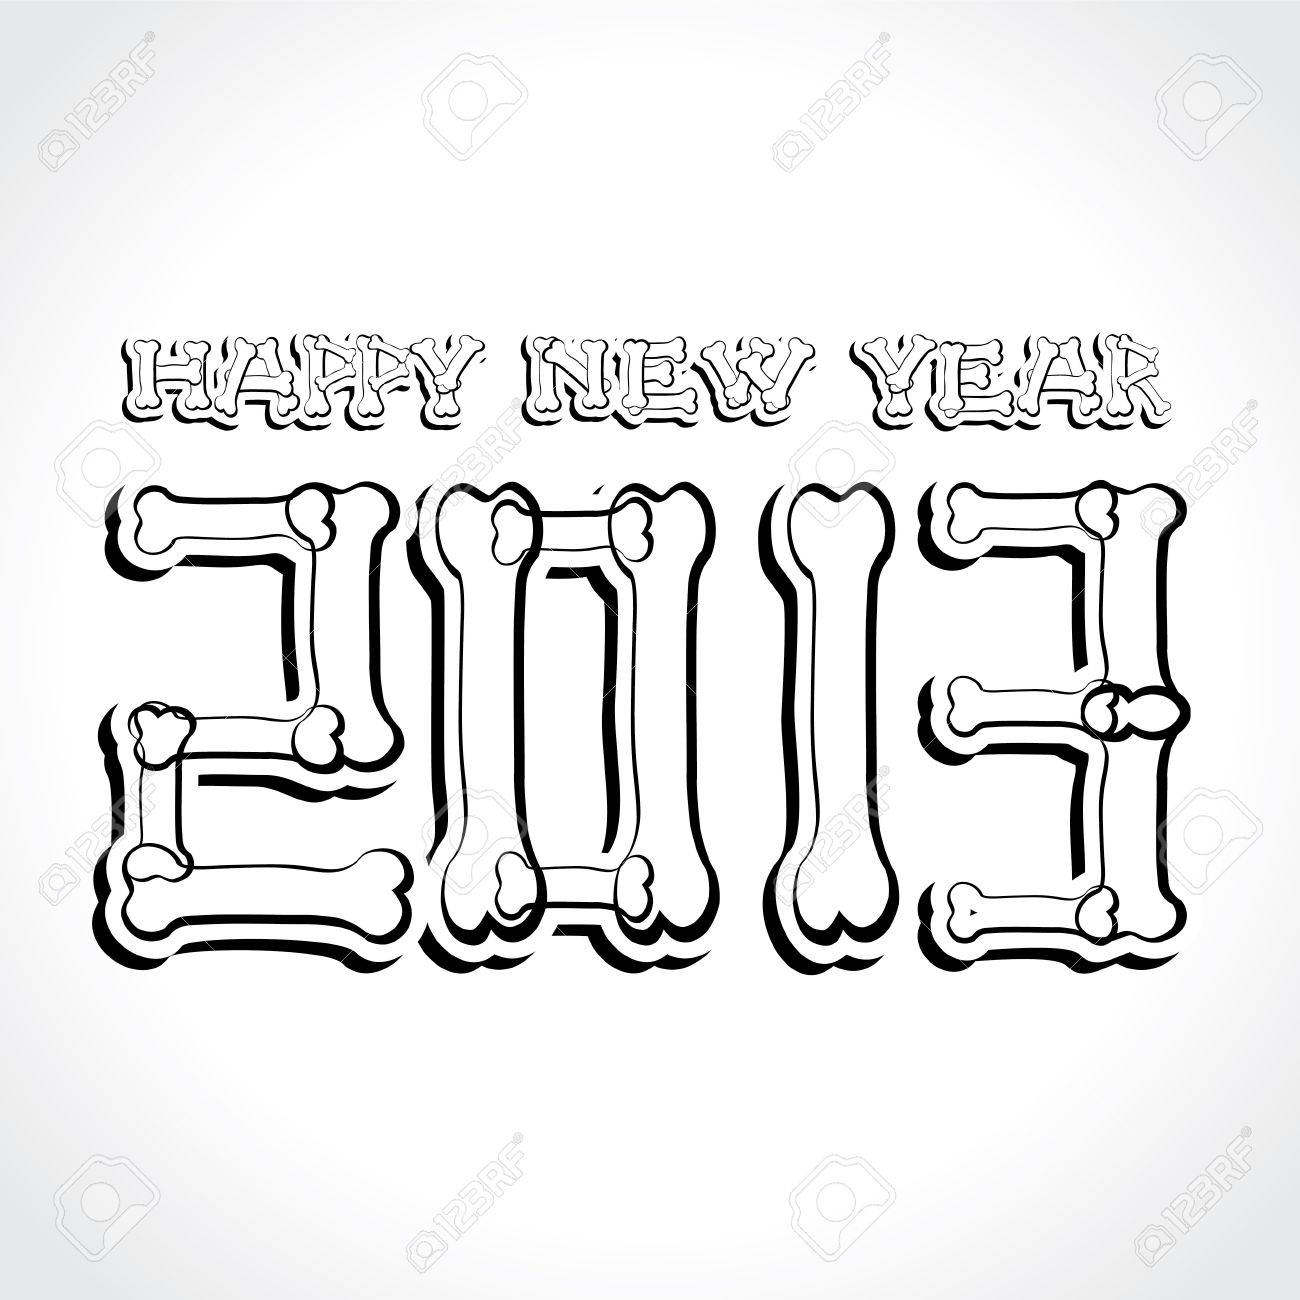 New Year Greeting,2013 Stock Vector - 17215062